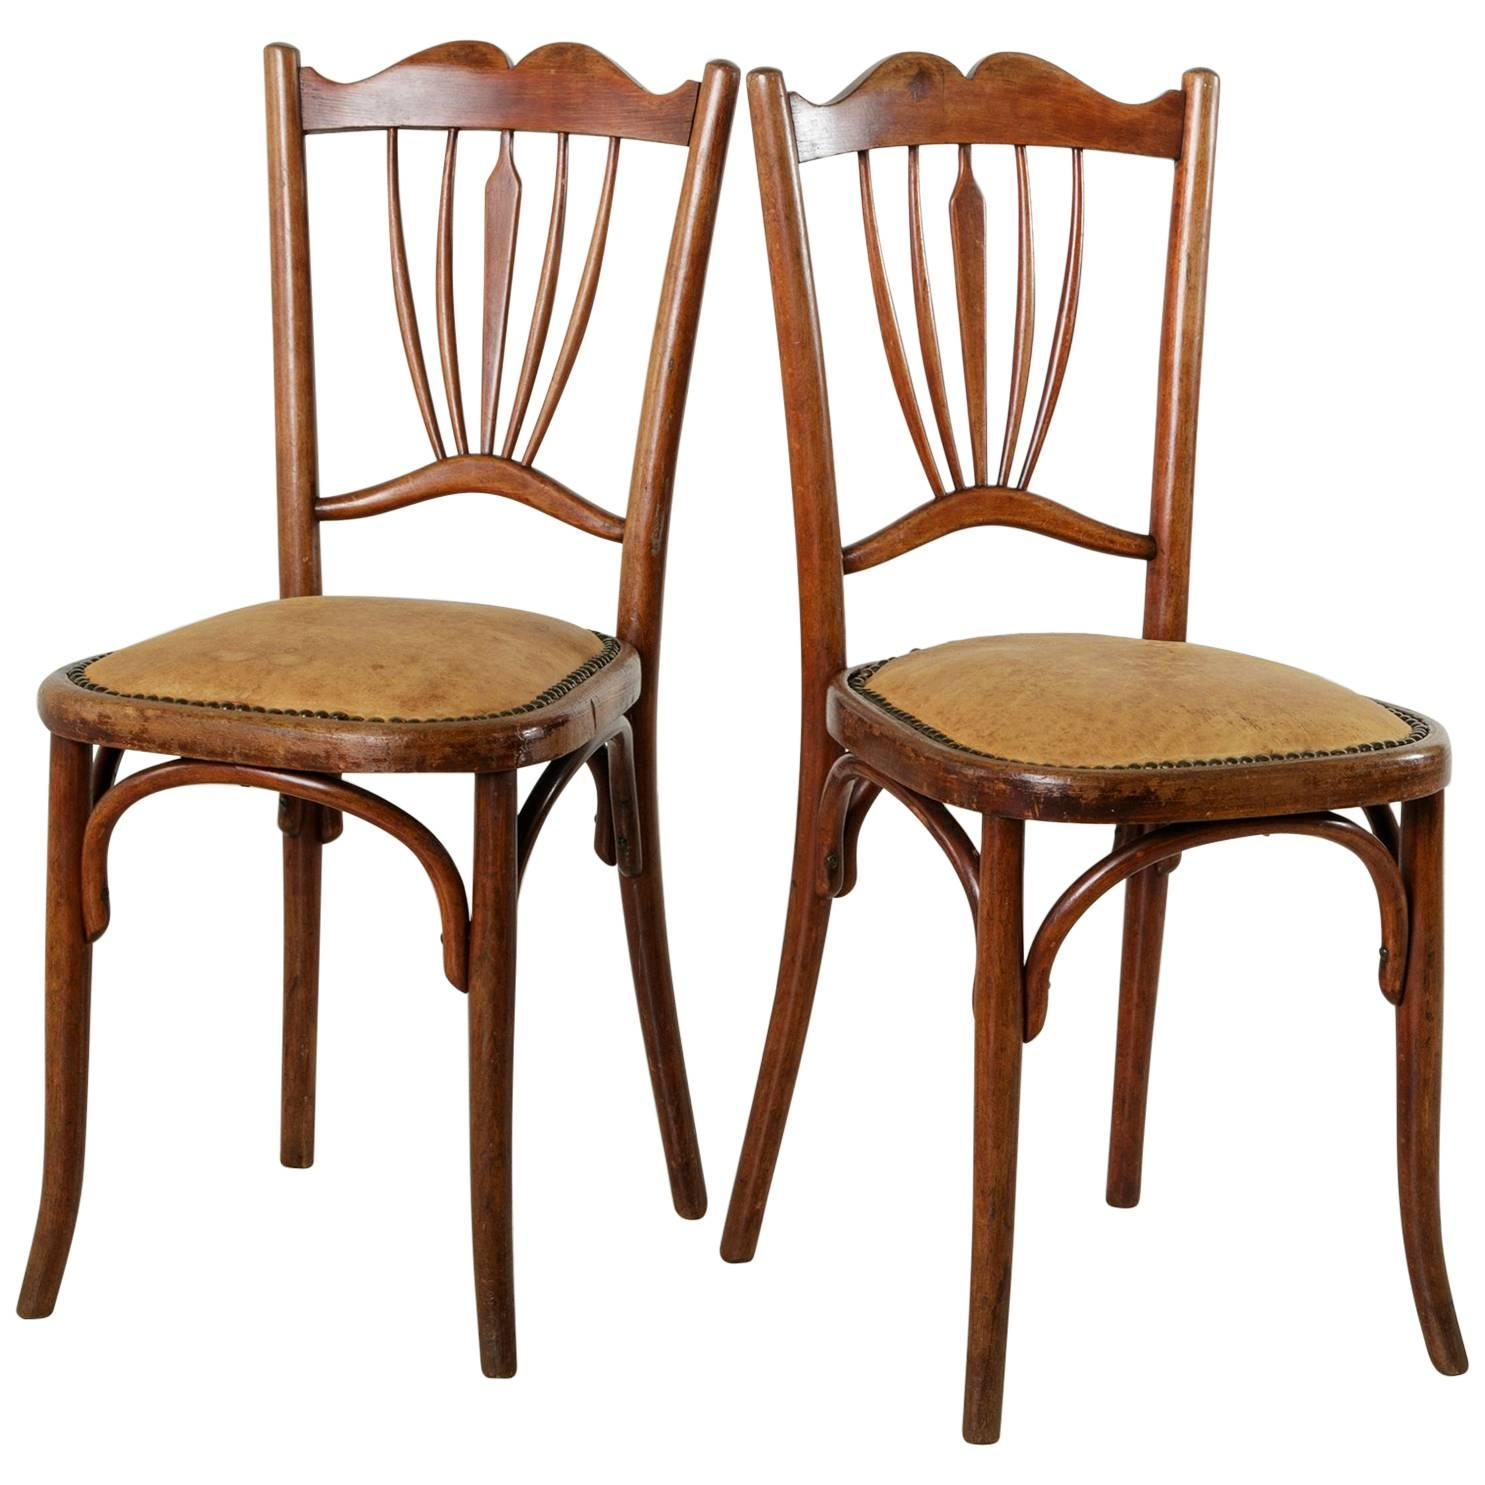 Art deco period furniture Chairs Pair Of Early 20th Century French Art Deco Period Bentwood Thonet Bistro Chairs For Sale Pinterest Pair Of Early 20th Century French Art Deco Period Bentwood Thonet